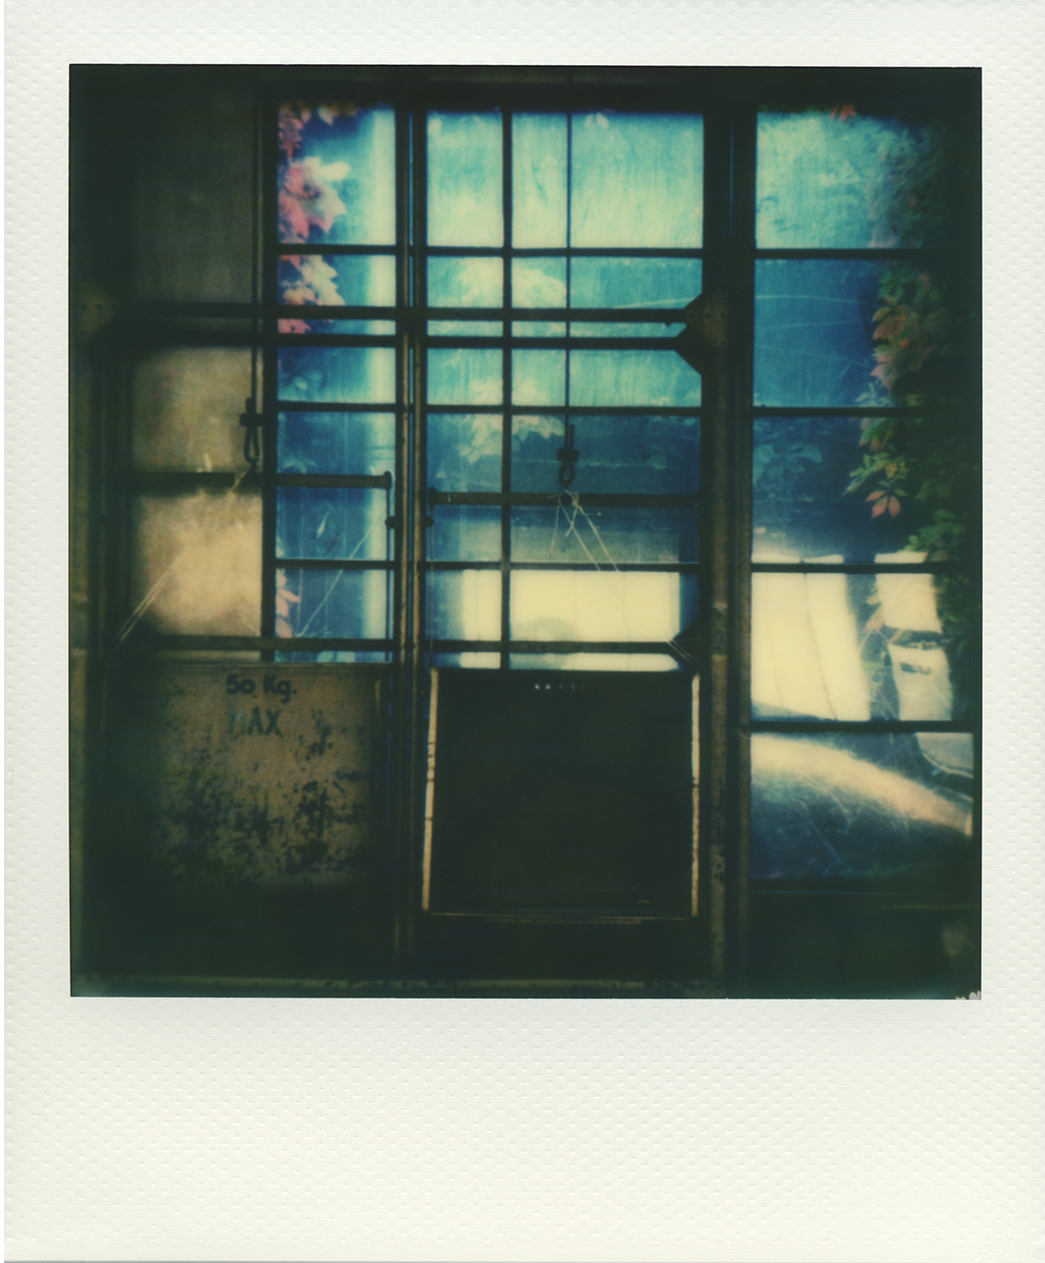 Pola windows 09